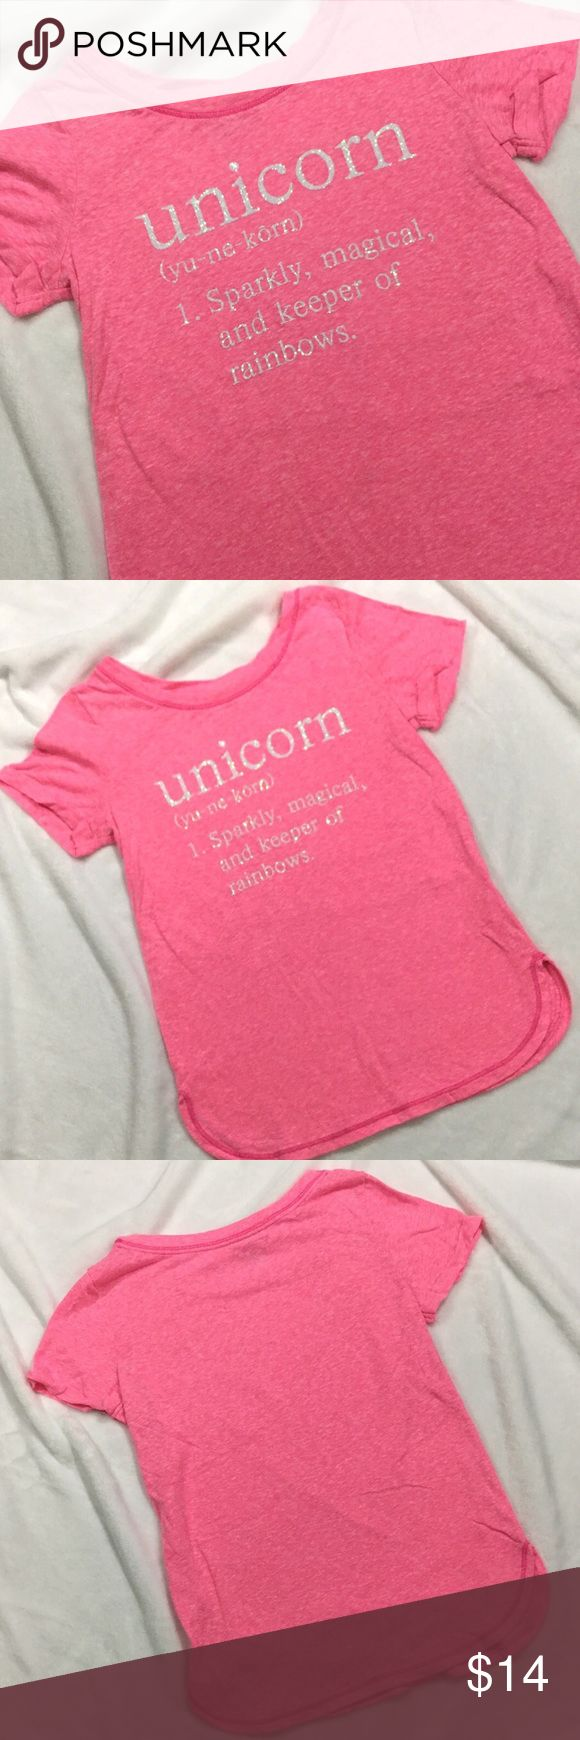 {Justice} Girls Pink UNICORN Sparkle shirt. Sz 8 JUSTICE Girls Pink UNICORN Sparkle shirt. Sz 8. No stains or holes. Sparkly white Unicorn definition Justice Shirts & Tops Tees - Short Sleeve